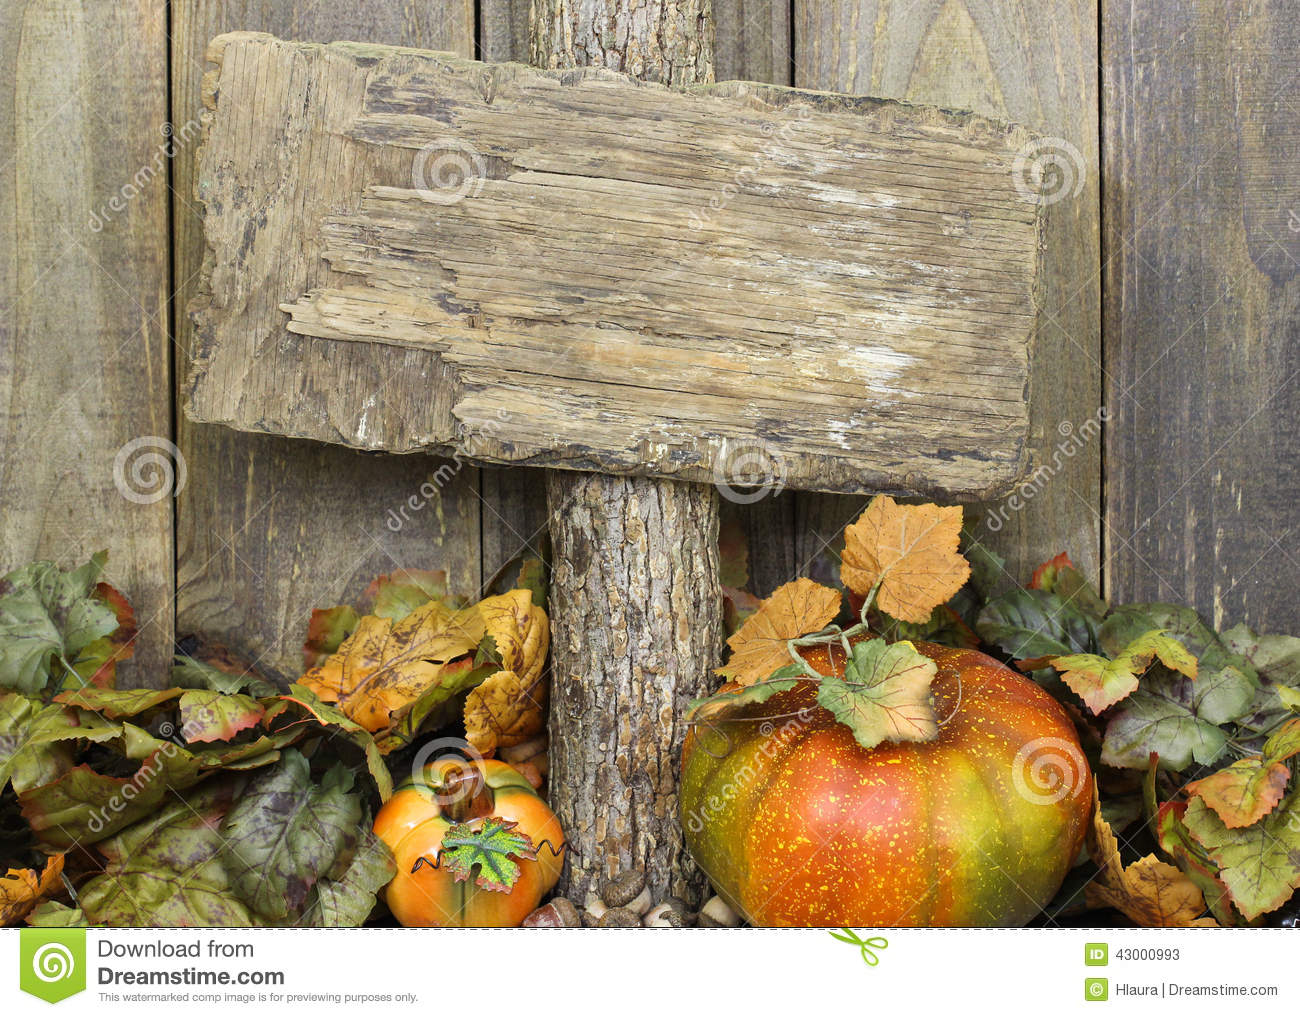 Blank Weathered Wood Sign With Autumn Border Of Leaves And